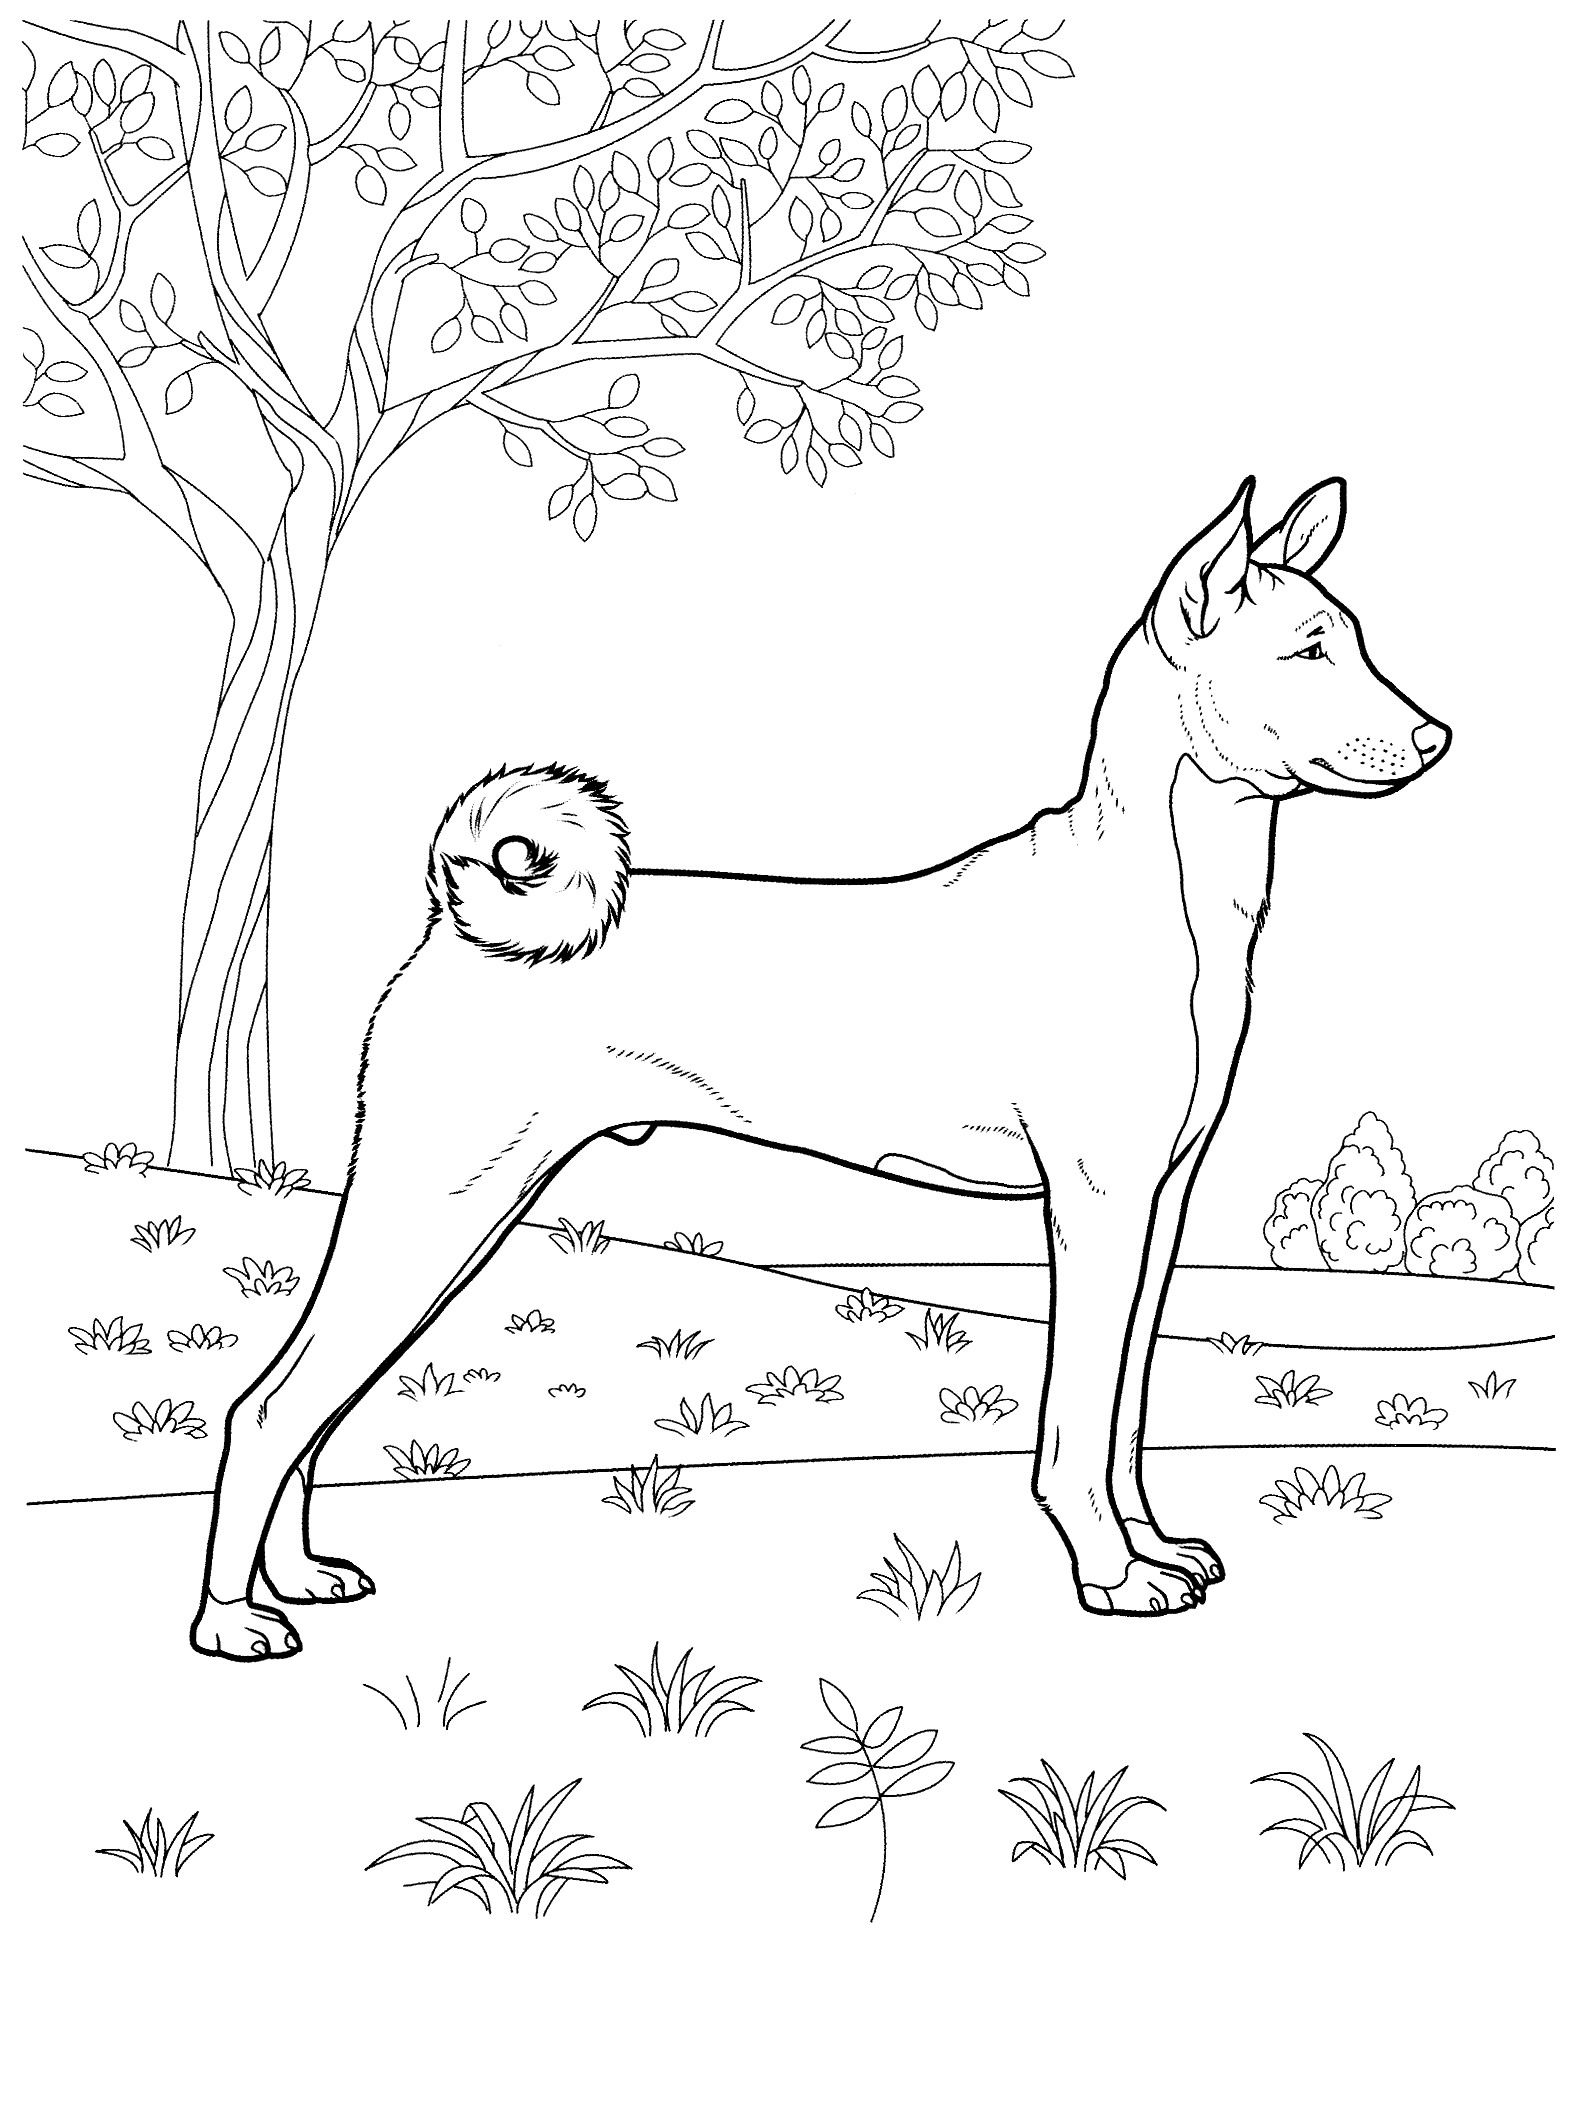 Dog Coloring Pages 34 Teenagers Coloring Pages